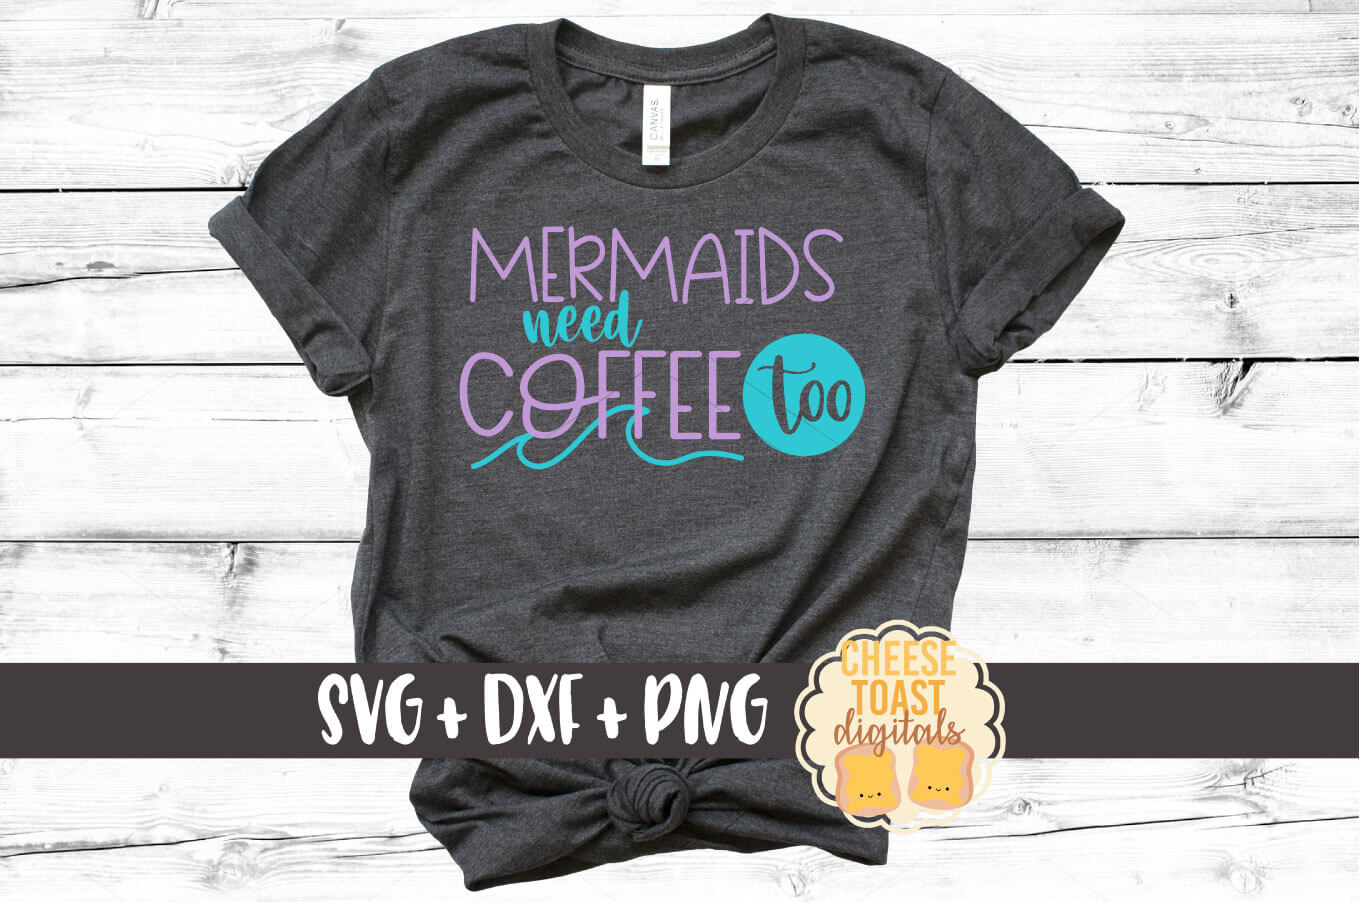 Mermaids Need Coffee Too - SVG, PNG, DXF